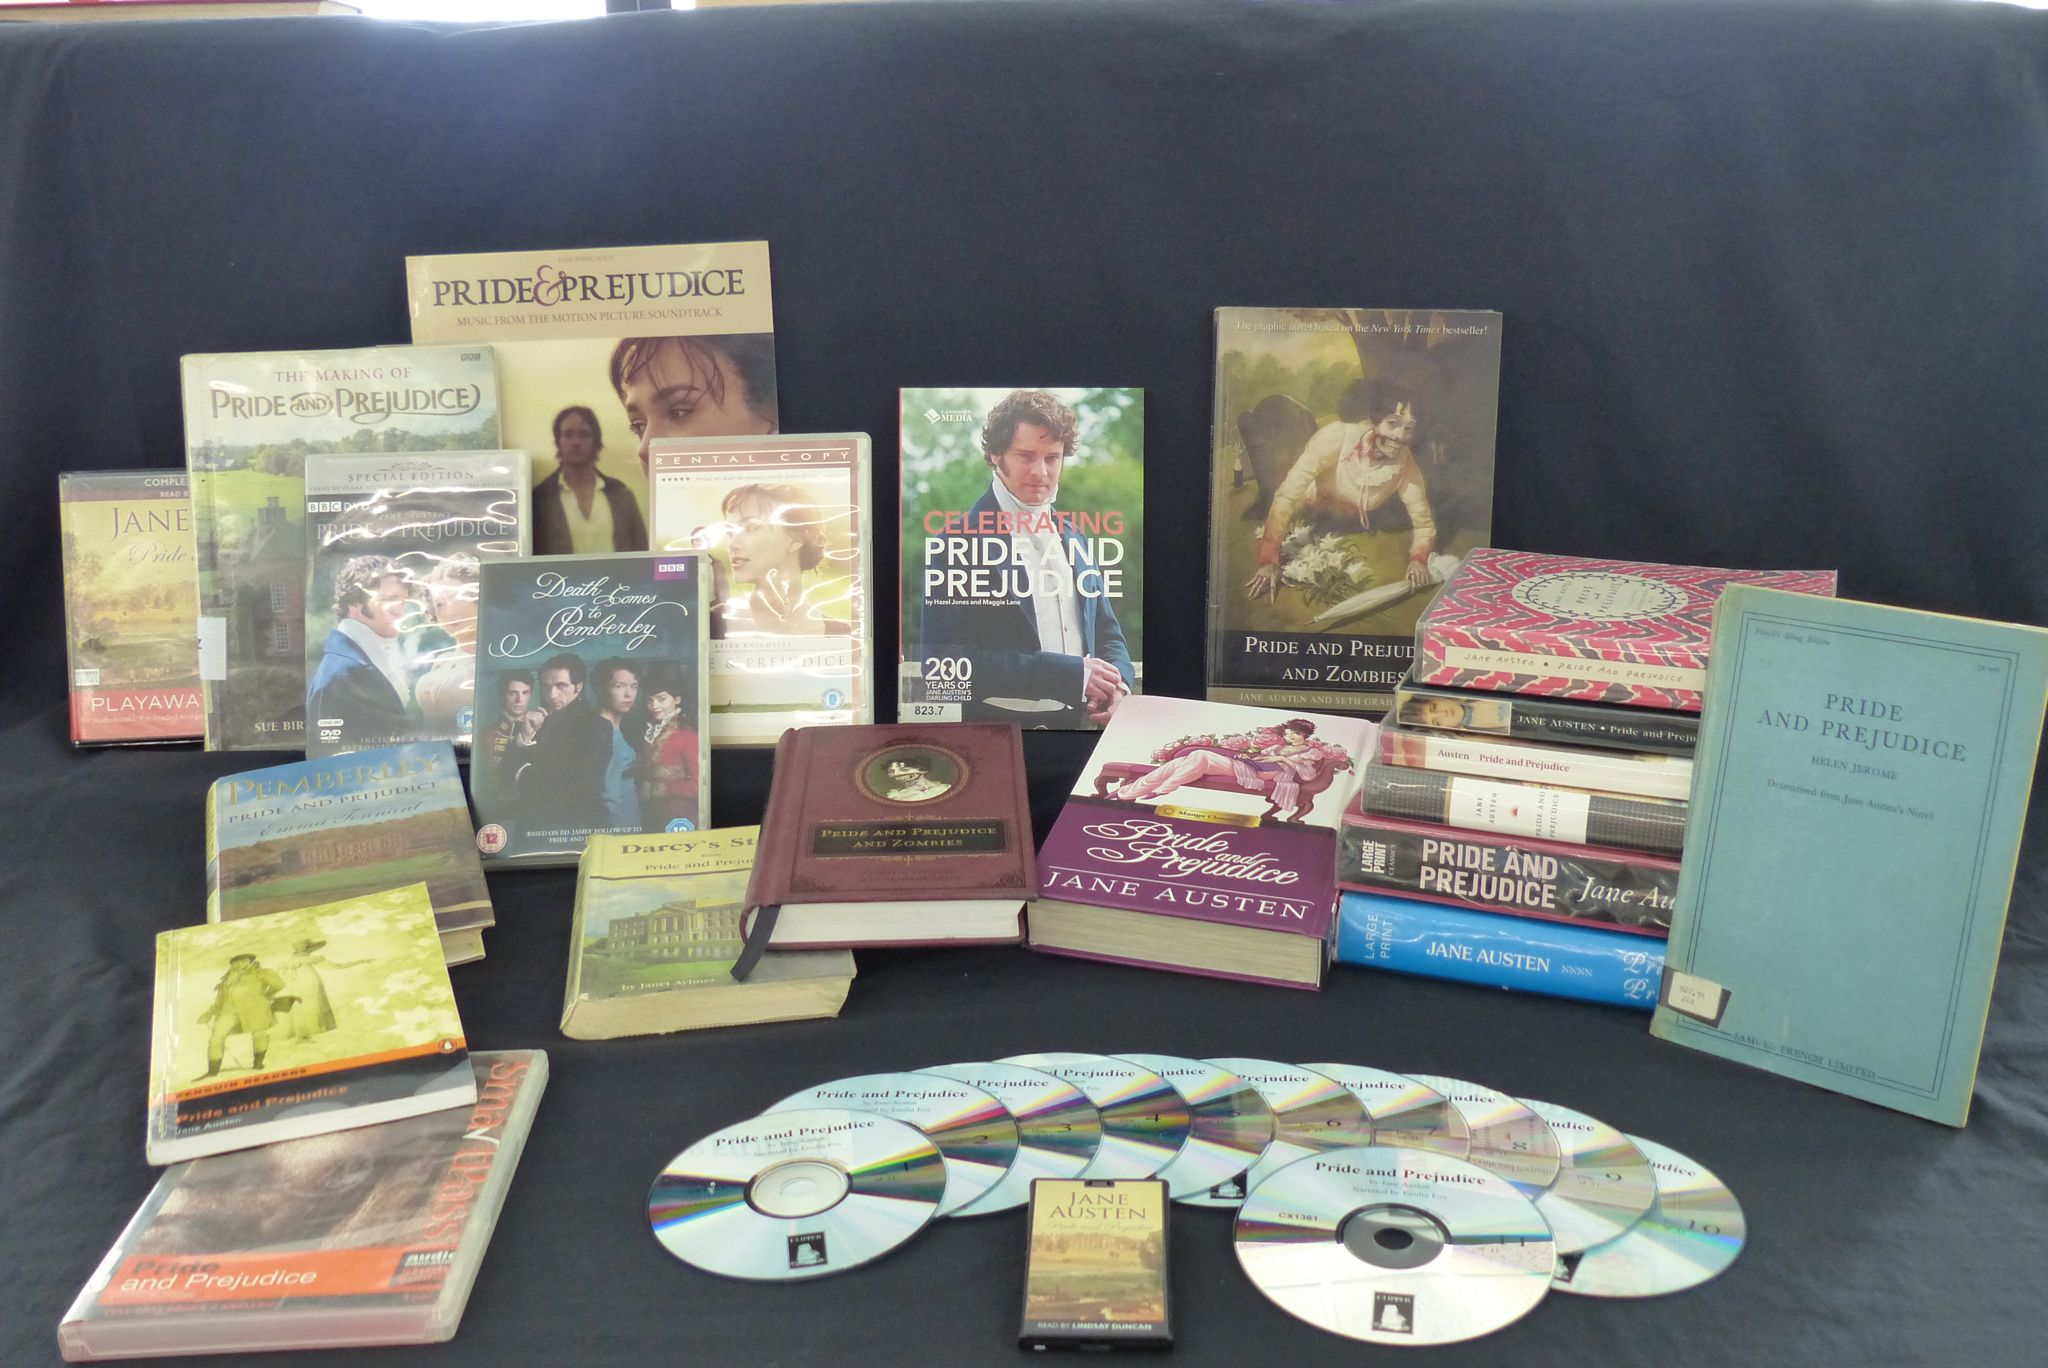 Pride & Prejudice several different ways. LibrariesWest versions in all formats.